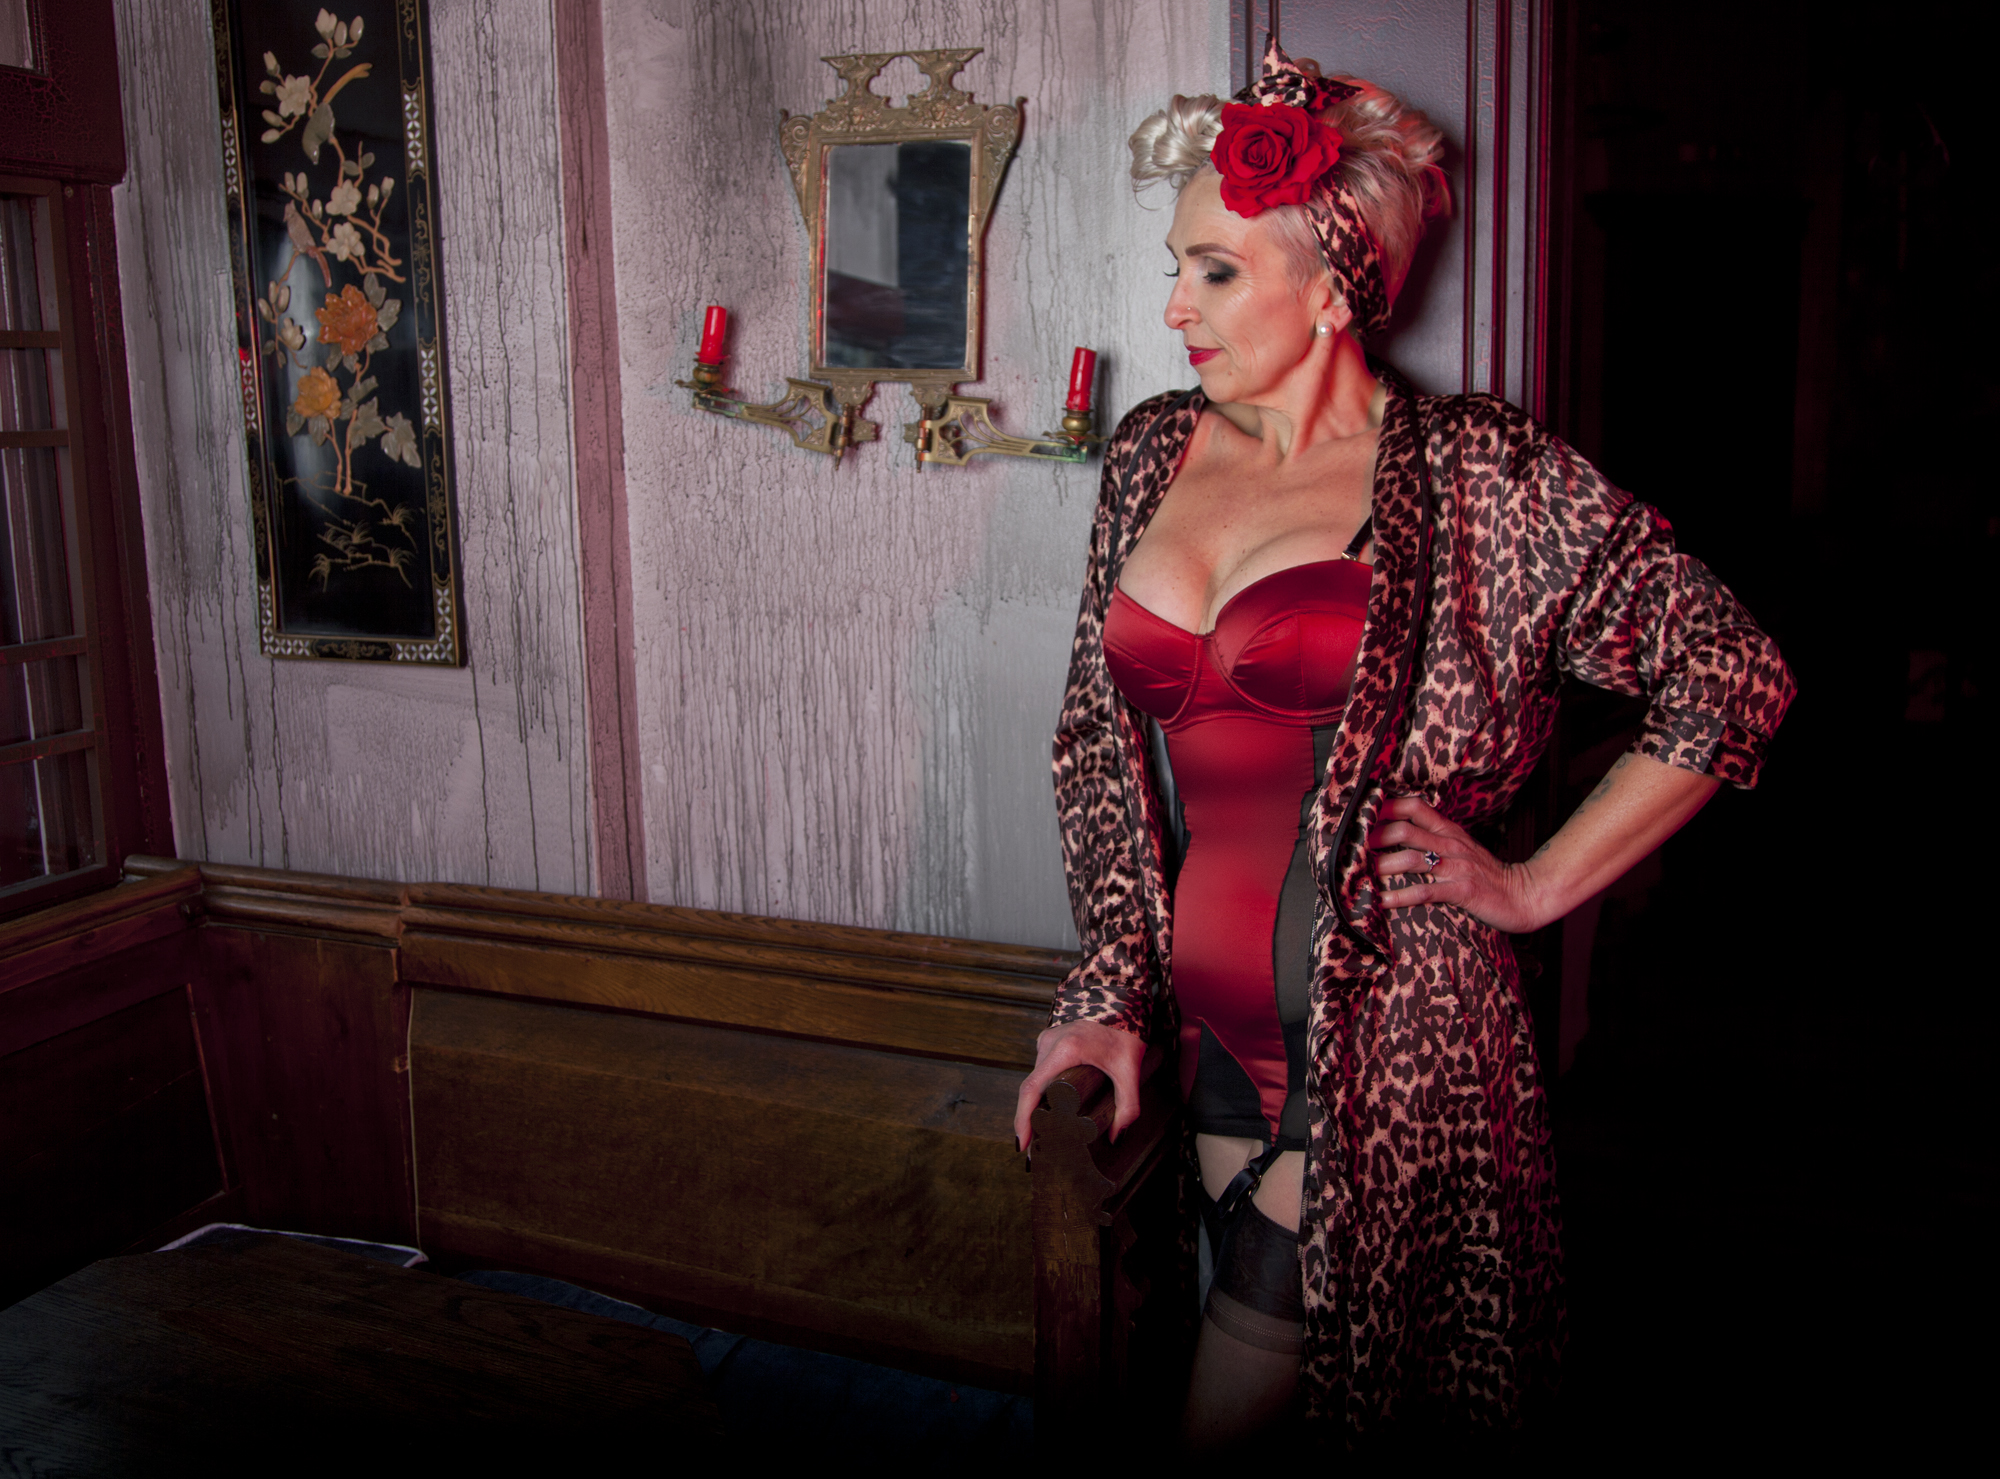 Karen wears the  Bettie Page Red Corsolette  and  Leopard Print Robe,  and a hair flower by our friends at  Bettie Page Hair